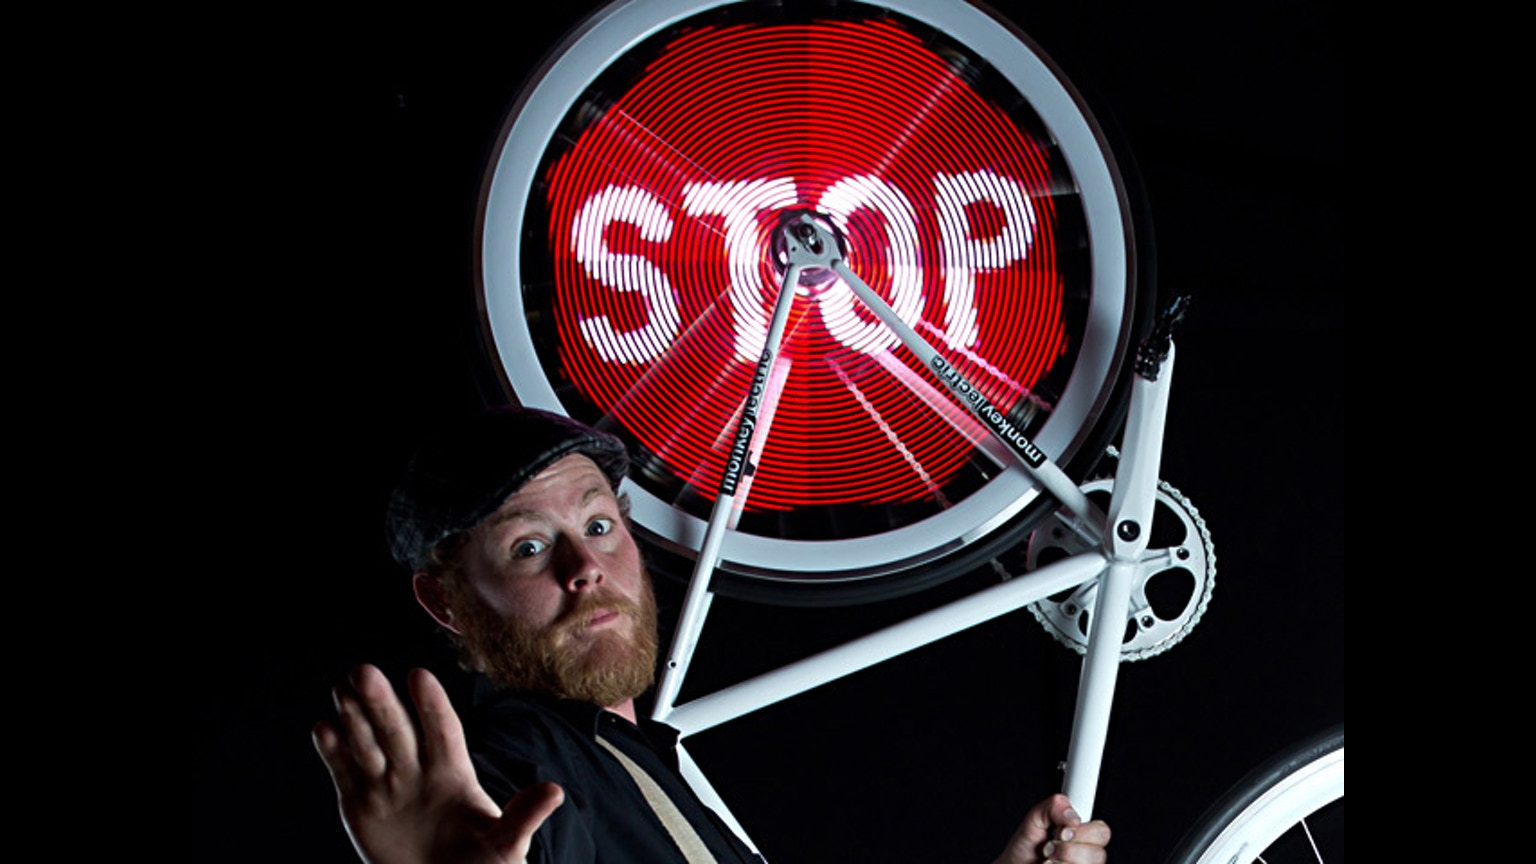 Image stop sur rayon de vélo via Monkey Lights